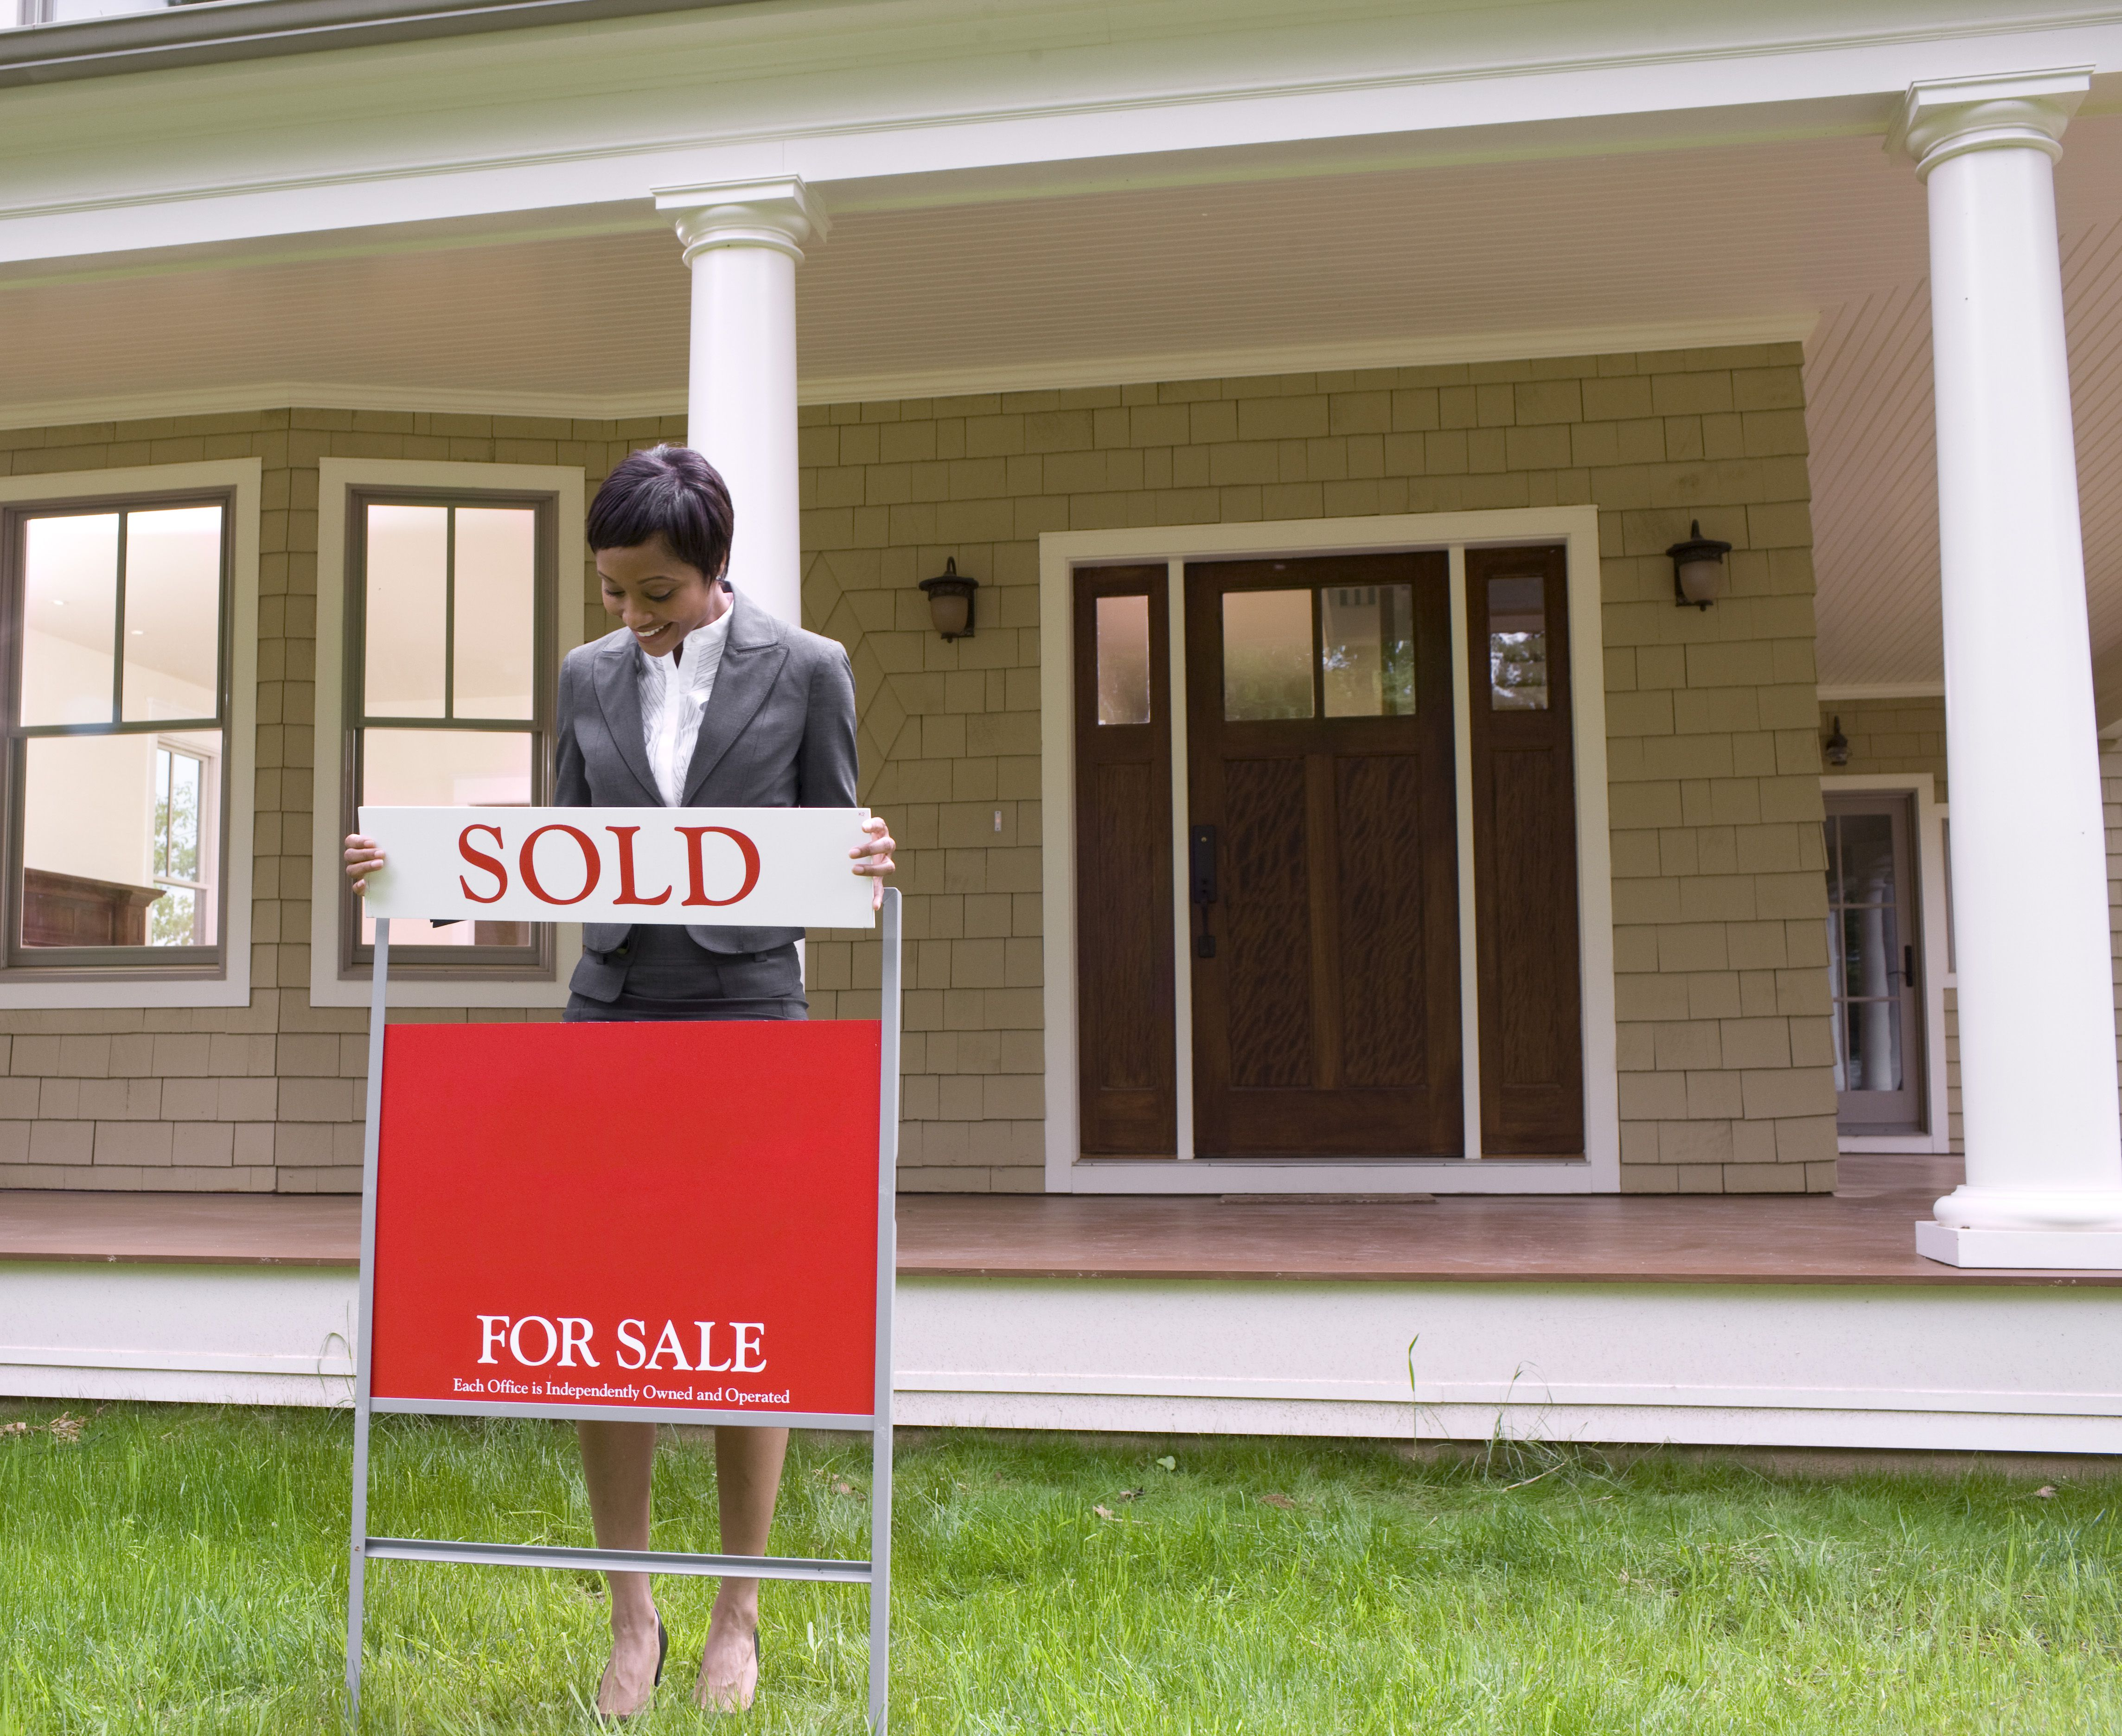 5 Things Not To Say In A Short Sale Hardship Letter